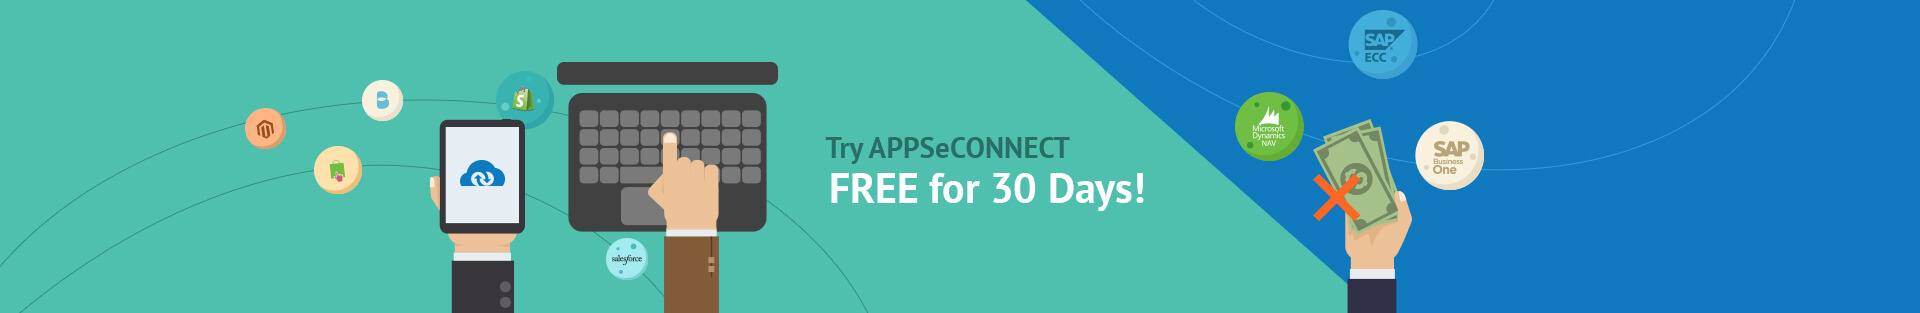 APPSeCONNECT 30 days free trial